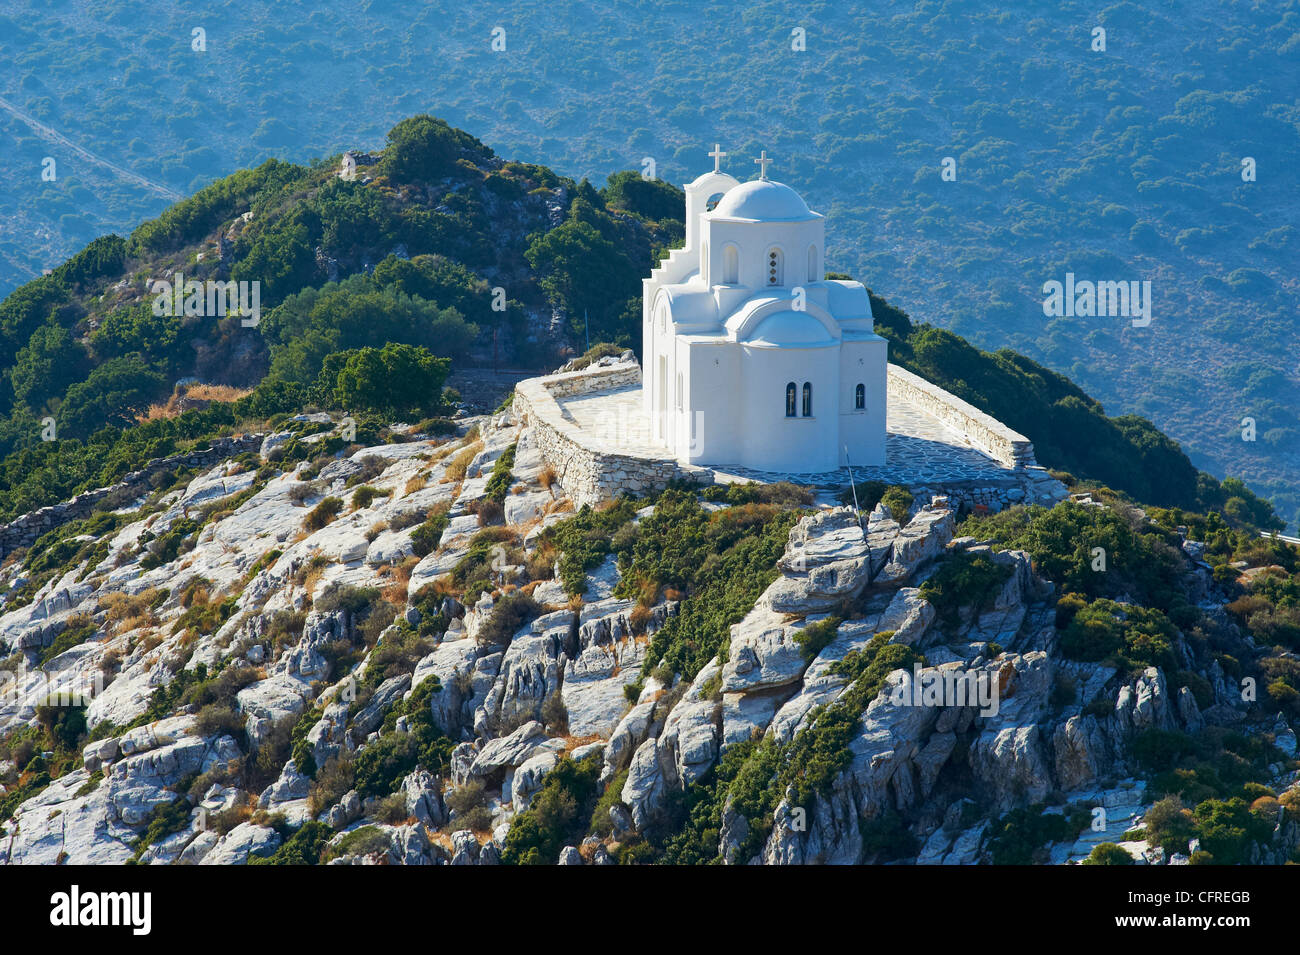 Church, Naxos, Cyclades Islands, Greek Islands, Greece, Europe - Stock Image